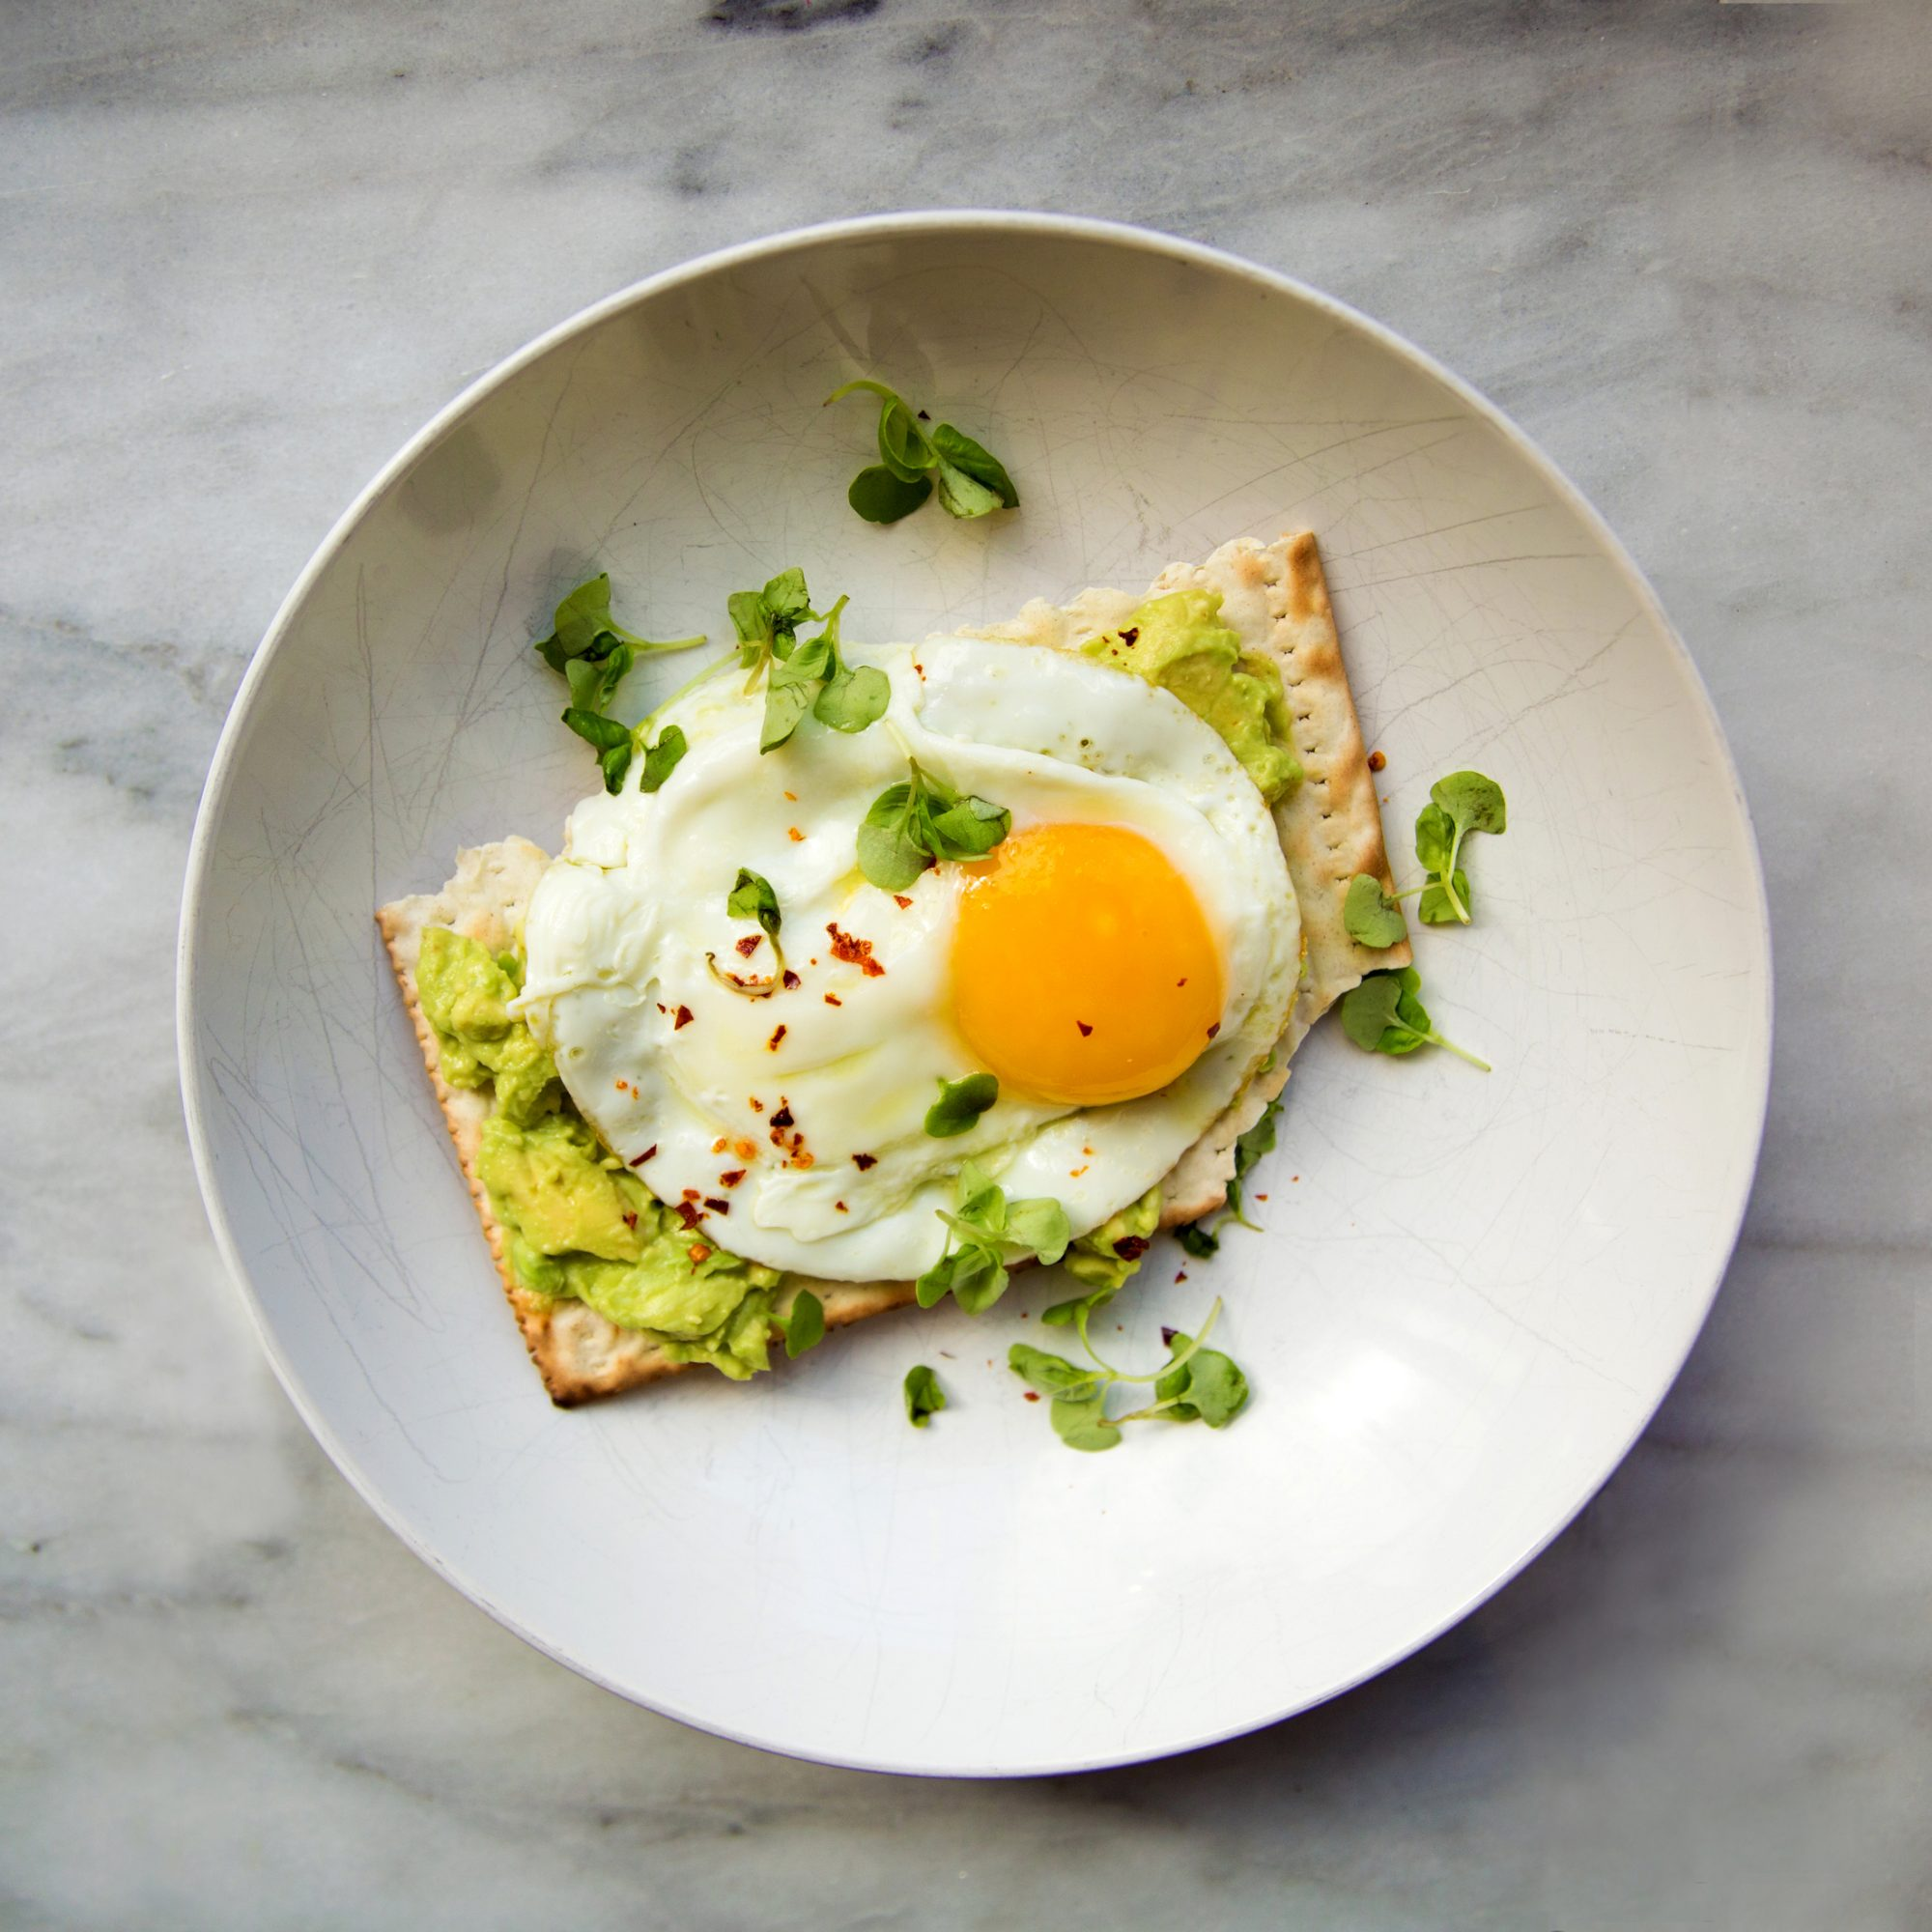 Matzo Avocado Crostini with Fried Eggs